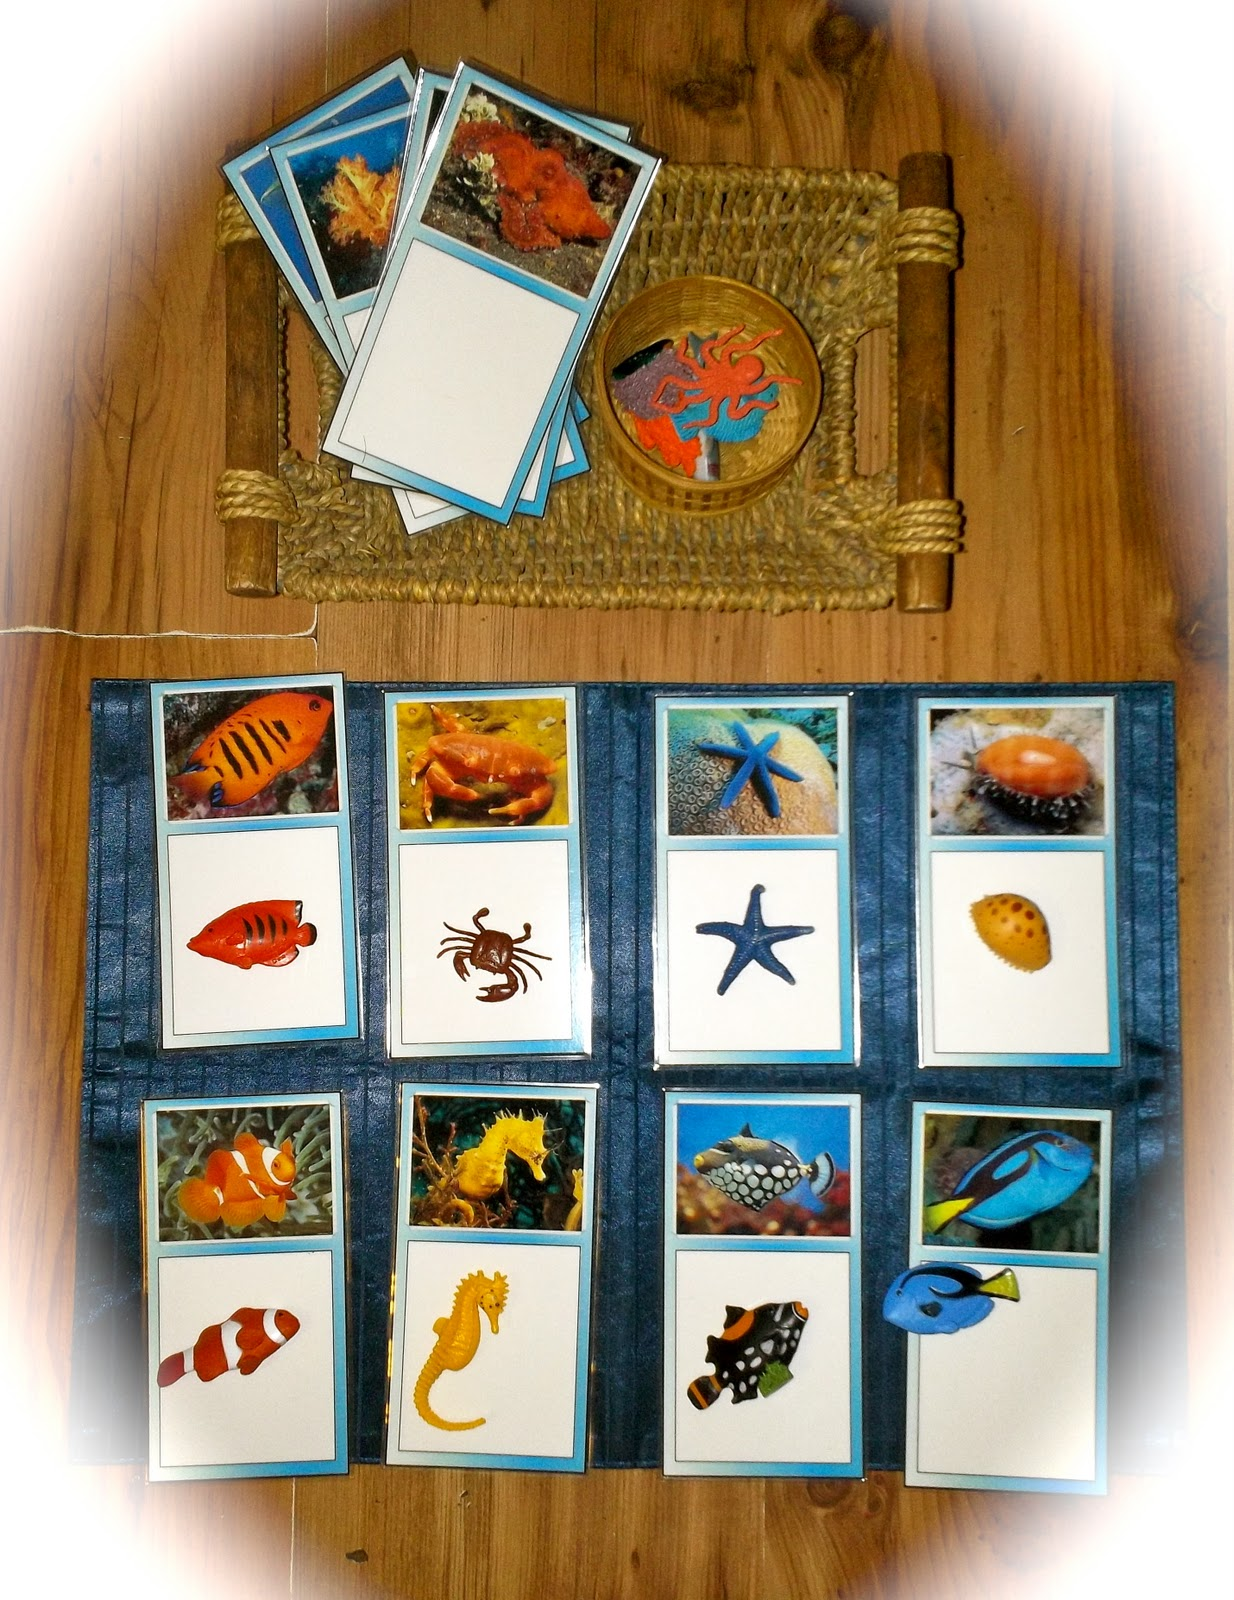 The Helpful Garden Montessori Ocean Animals Matching Game